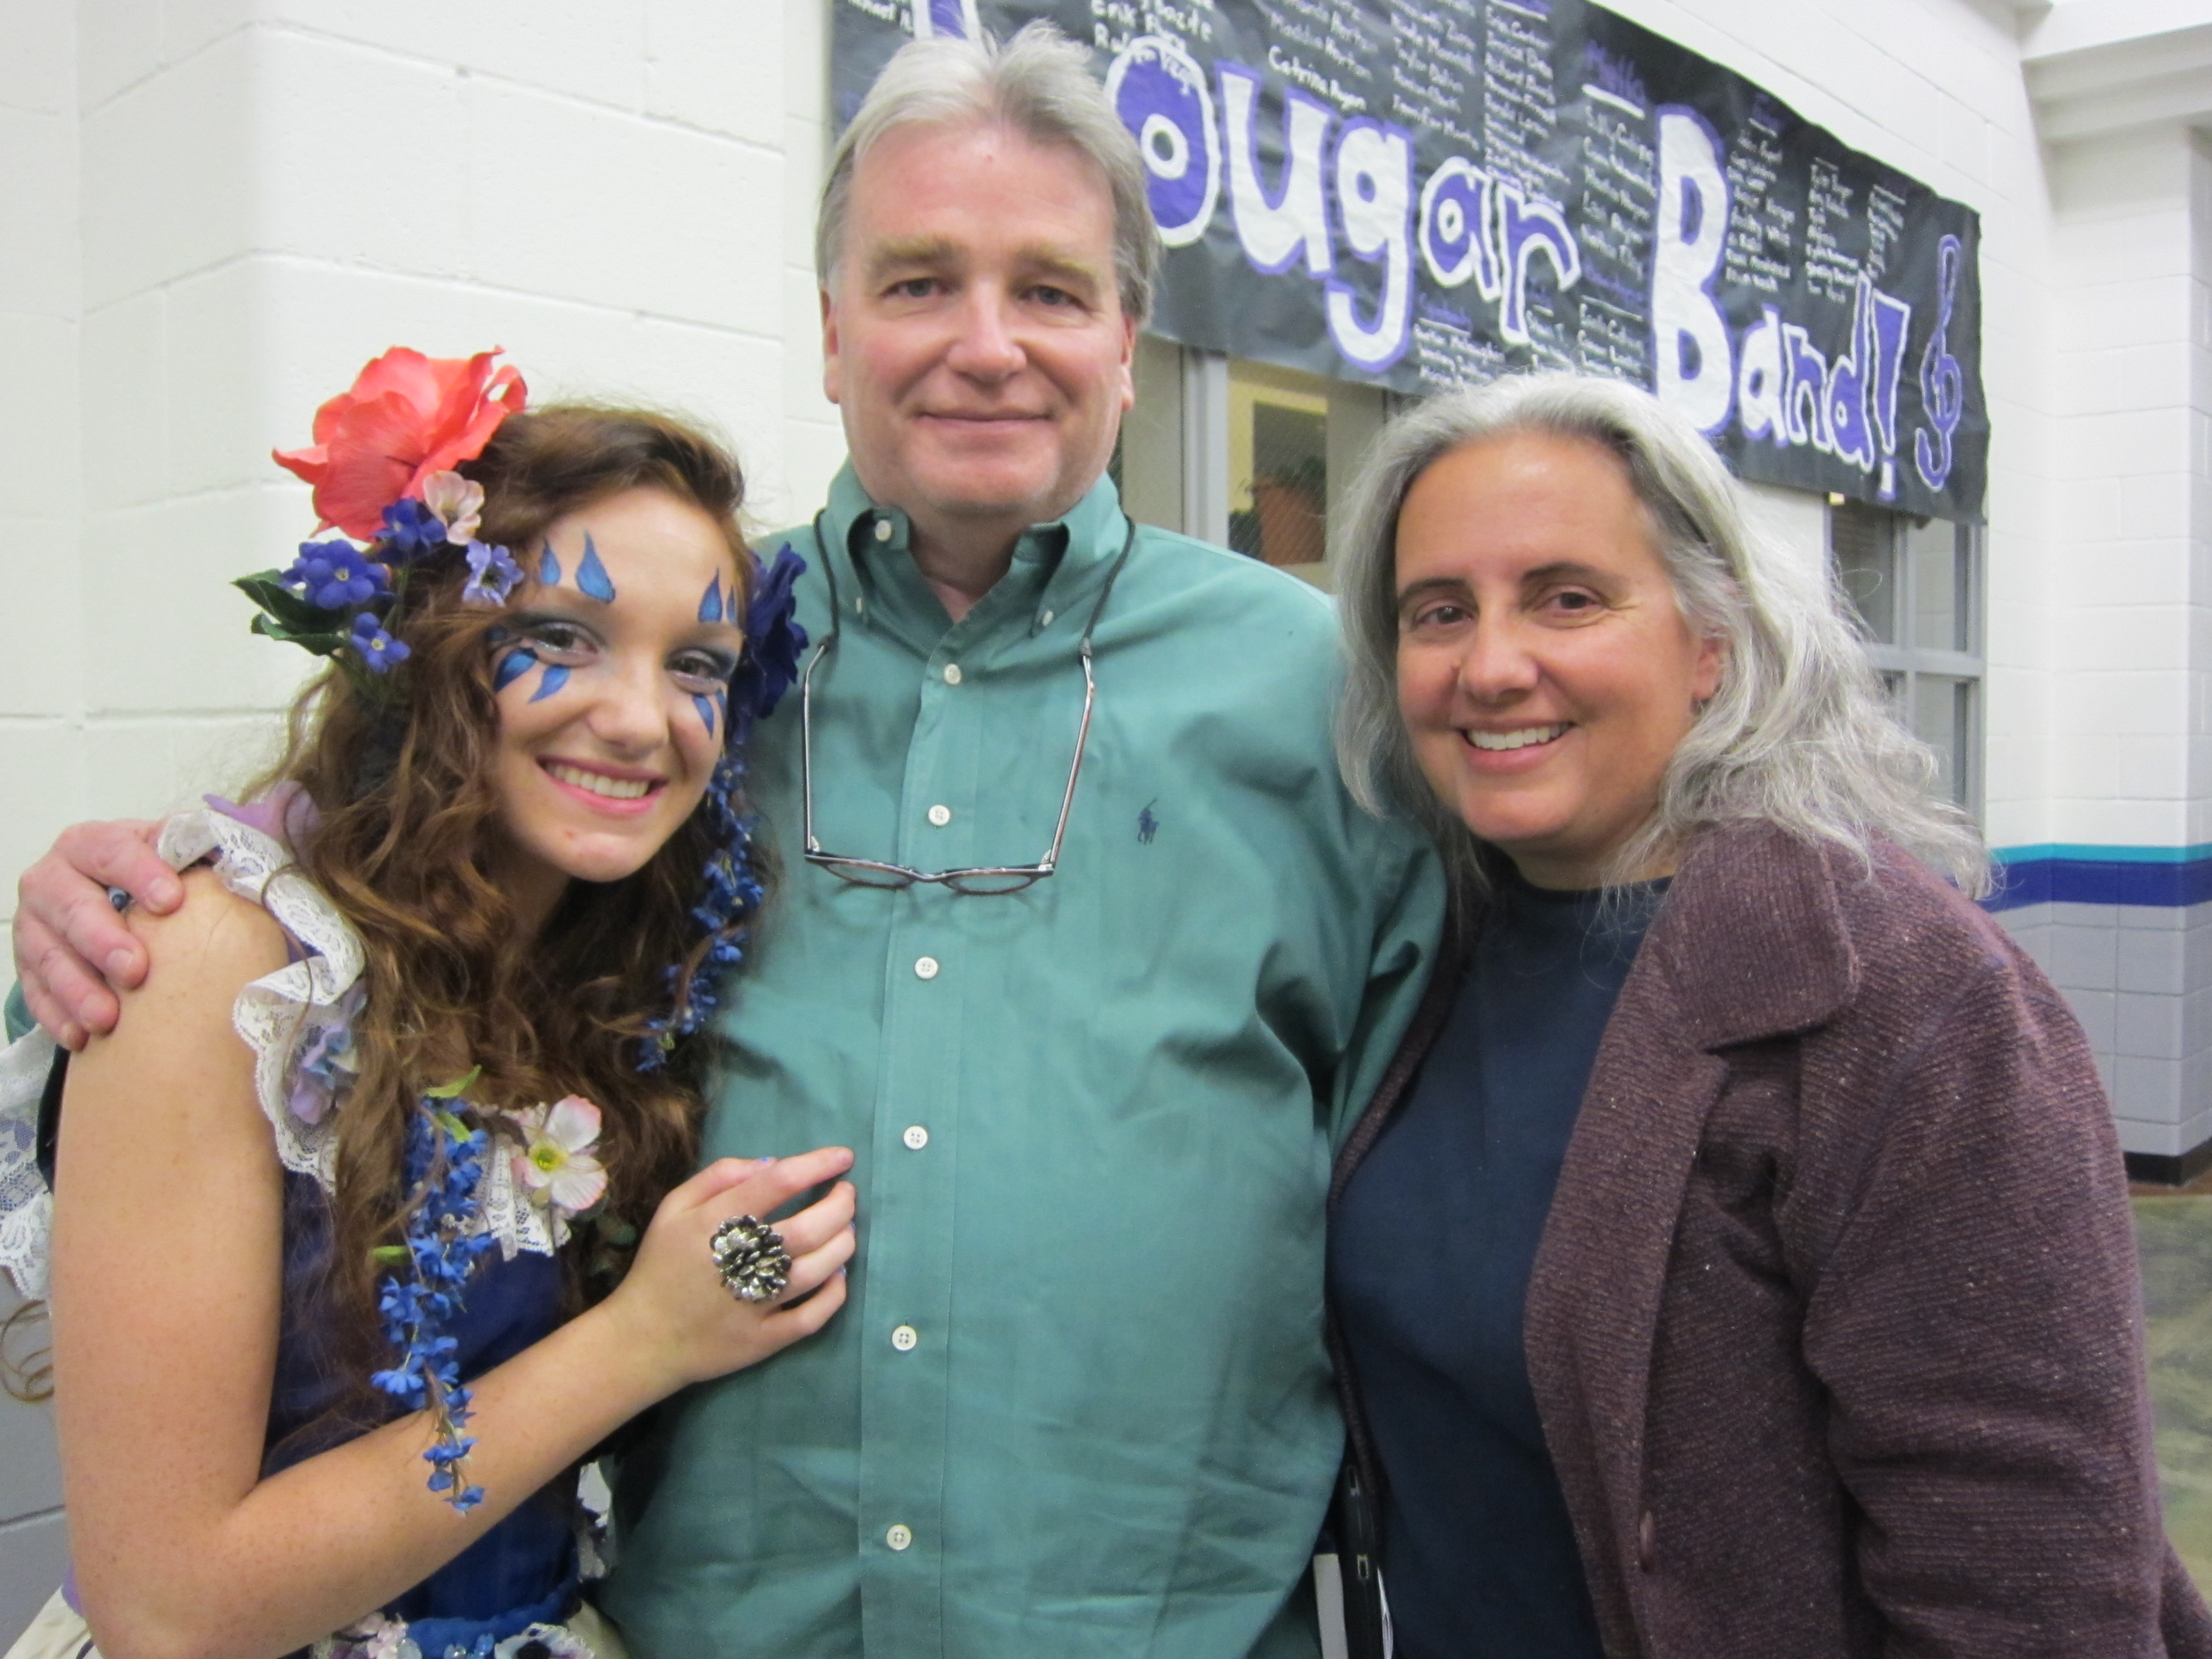 Jaesa, Deana and Dale at A Midsummer Nights' Dream at Spanish Springs High School